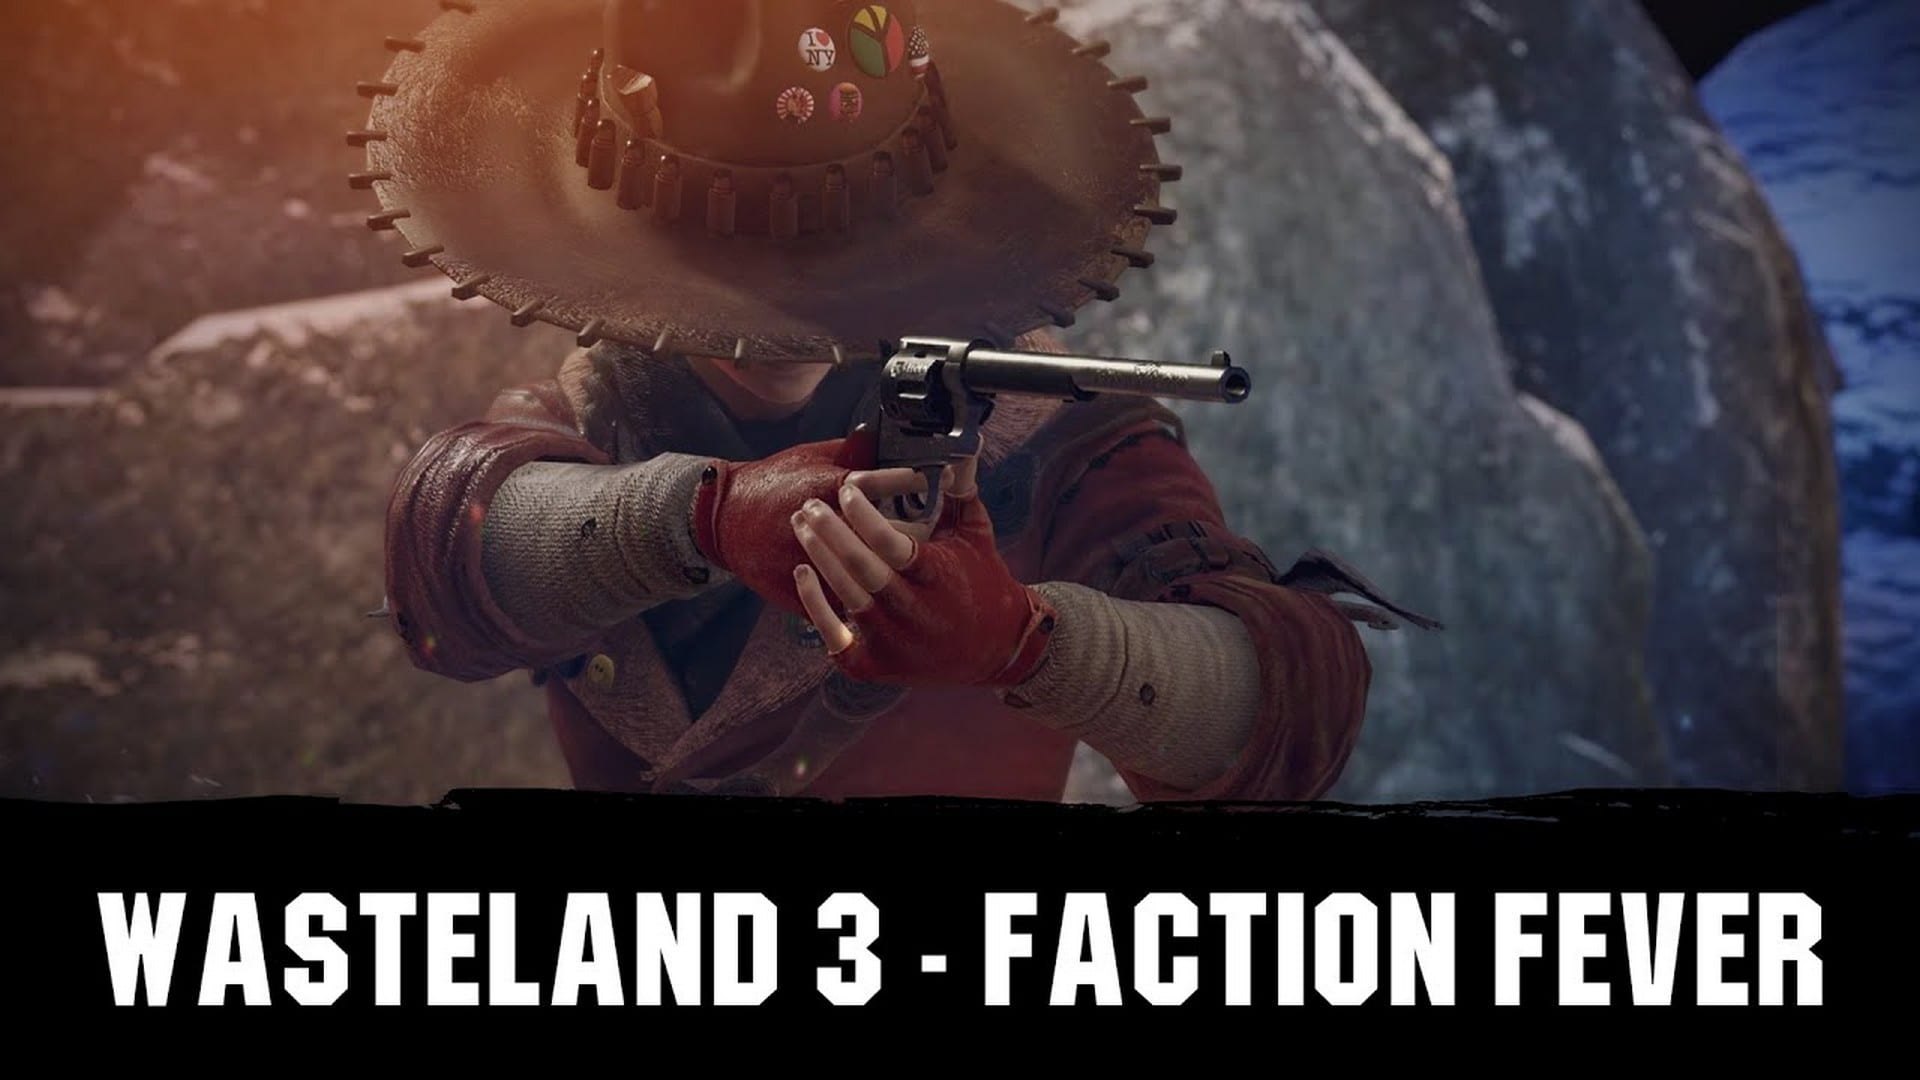 Wasteland 3: Faction Fever Trailer Released